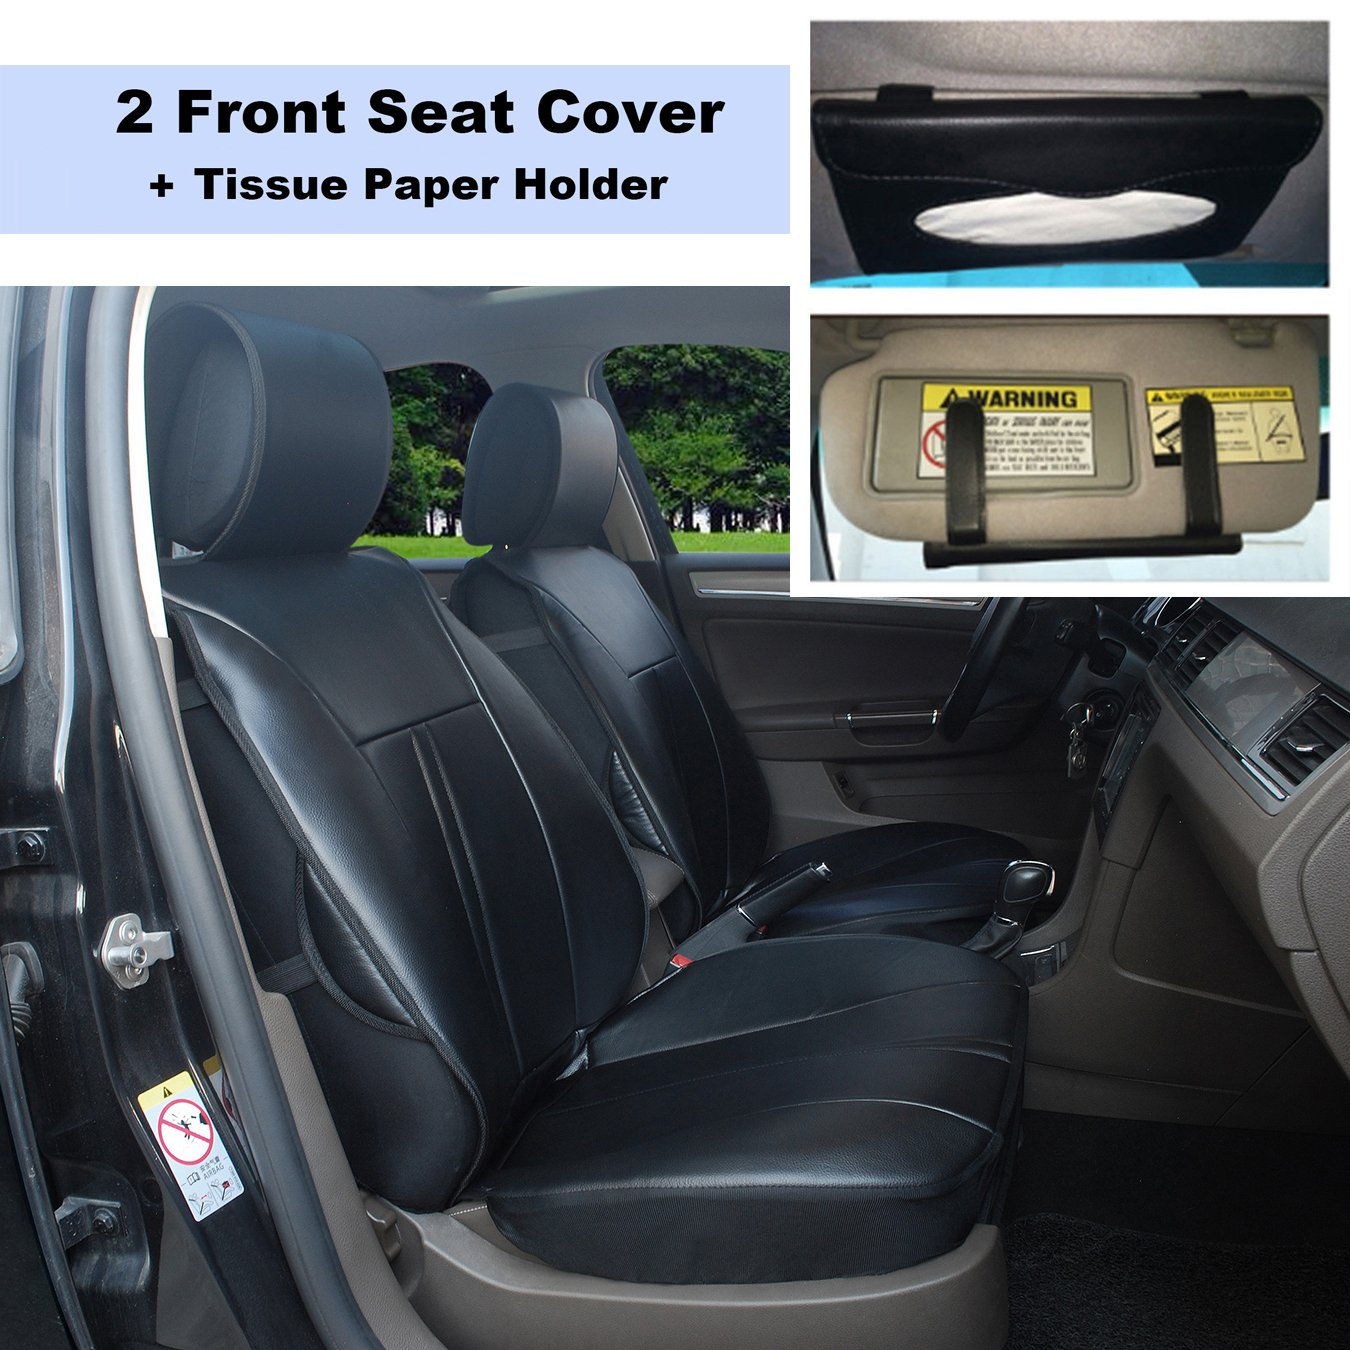 chevy malibu seat covers best seat covers for chevrolet html autos weblog. Black Bedroom Furniture Sets. Home Design Ideas